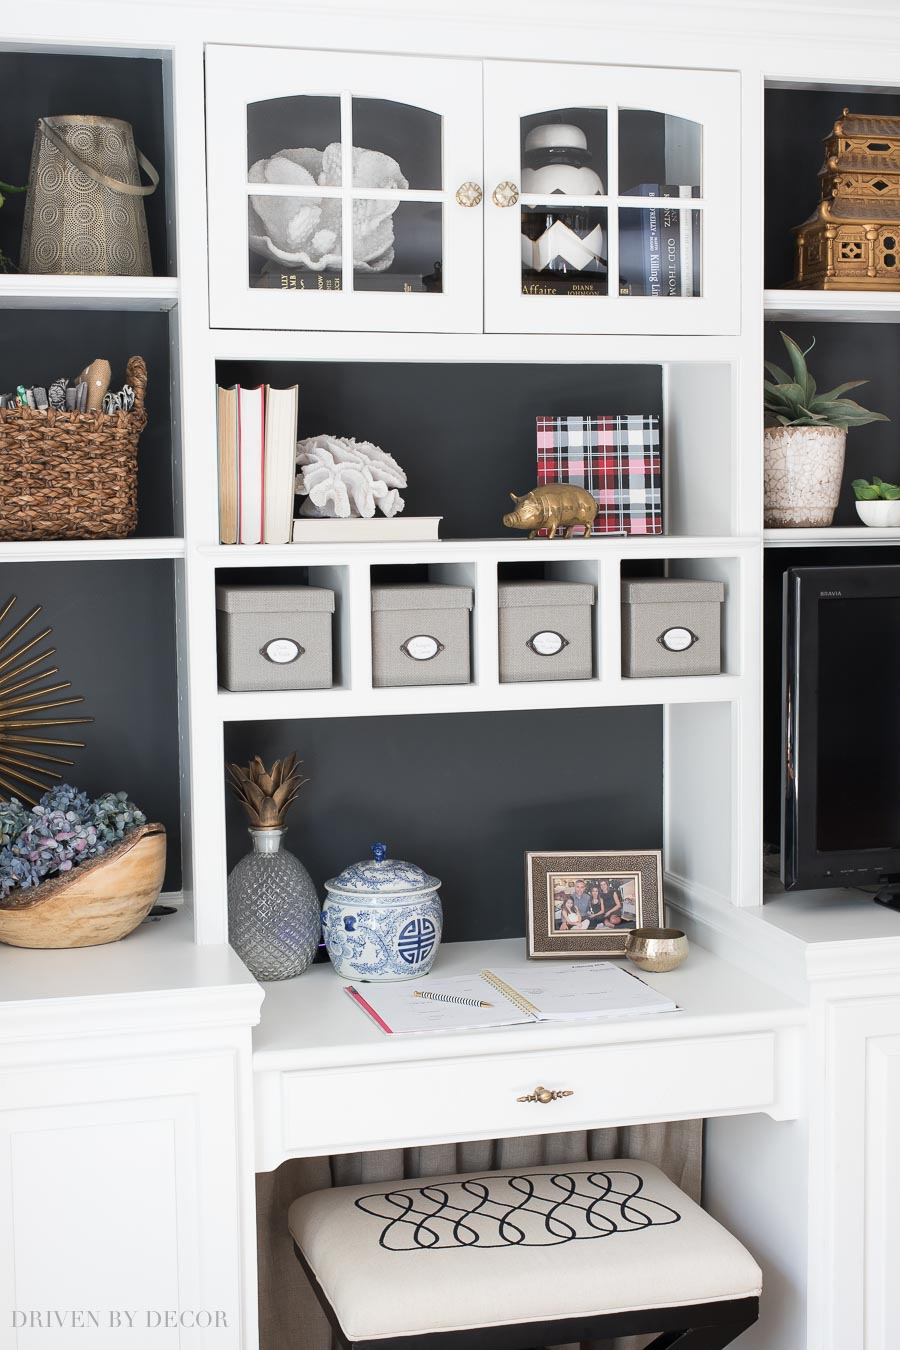 Superbe Awesome Tips On How To Style Your Bookcase And Shelving!